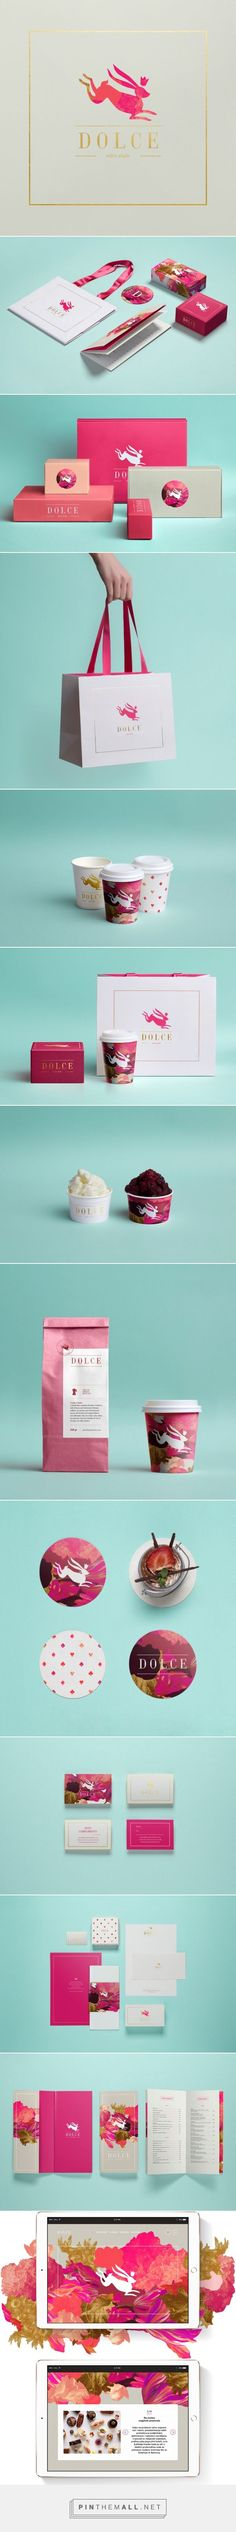 Dolce Branding by Metaklinika | Fivestar Branding – Design and Branding Agency & Inspiration Gallery